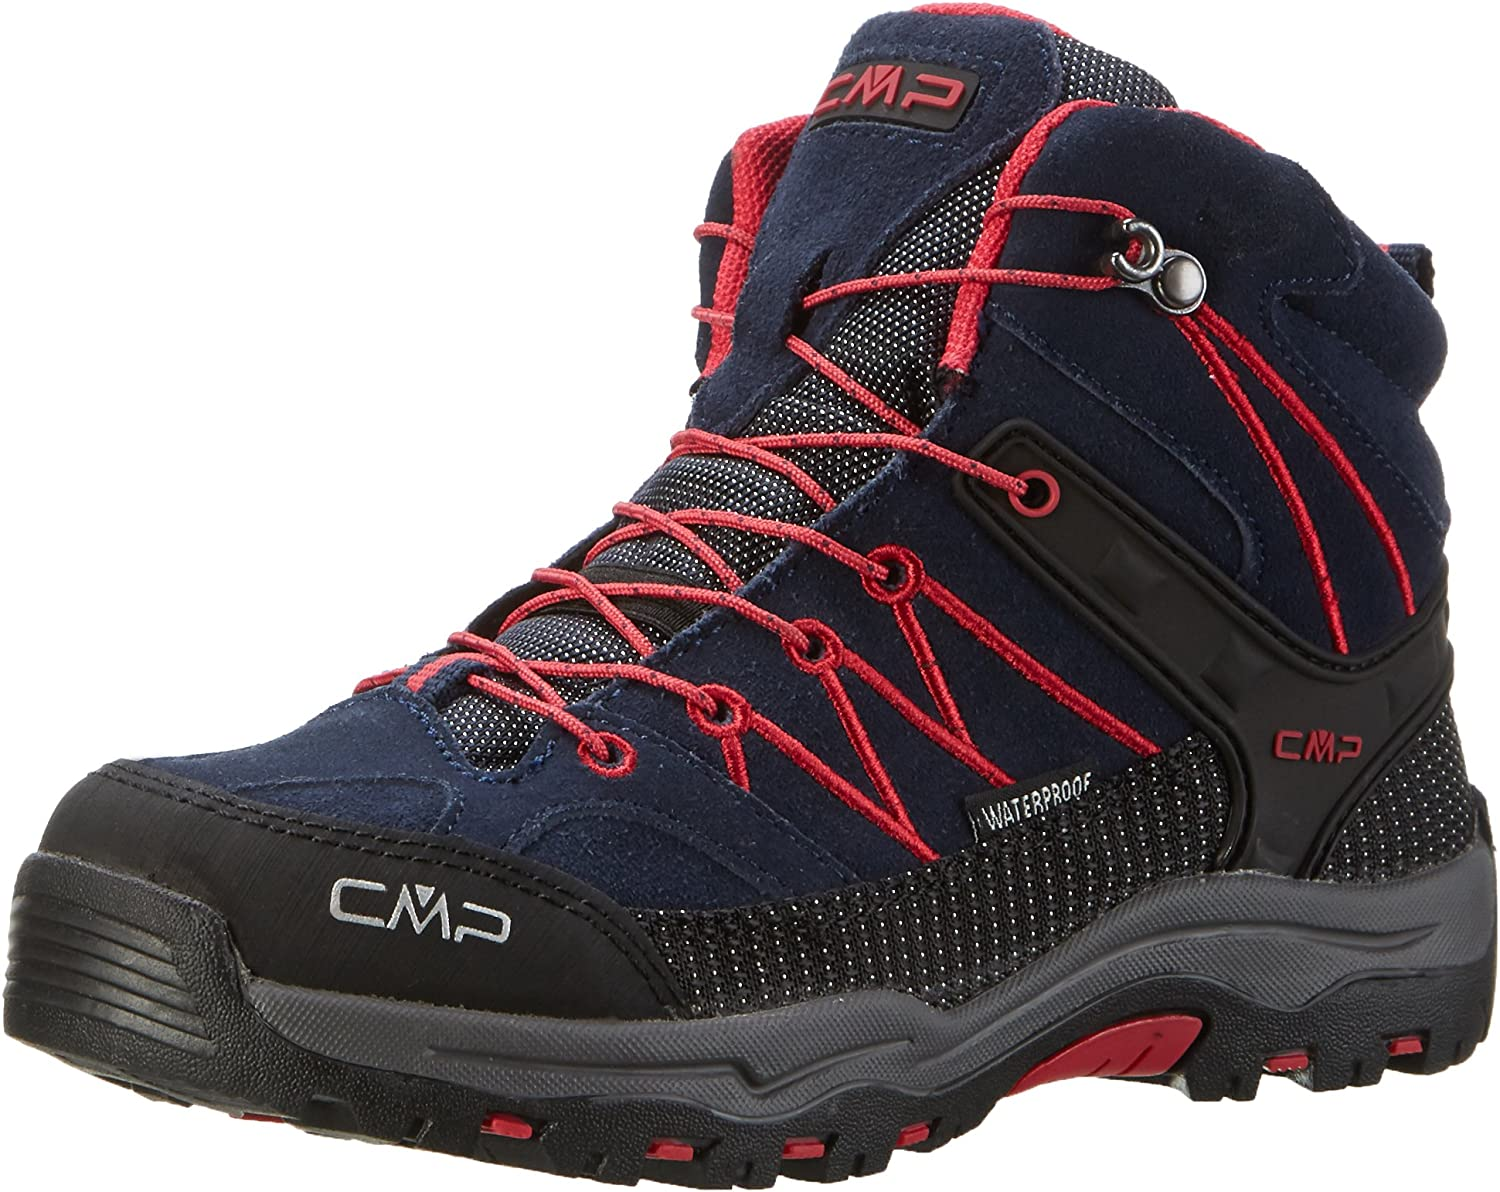 CMP Unisex Adults' Rigel Mid Wp High Rise Hiking shoes